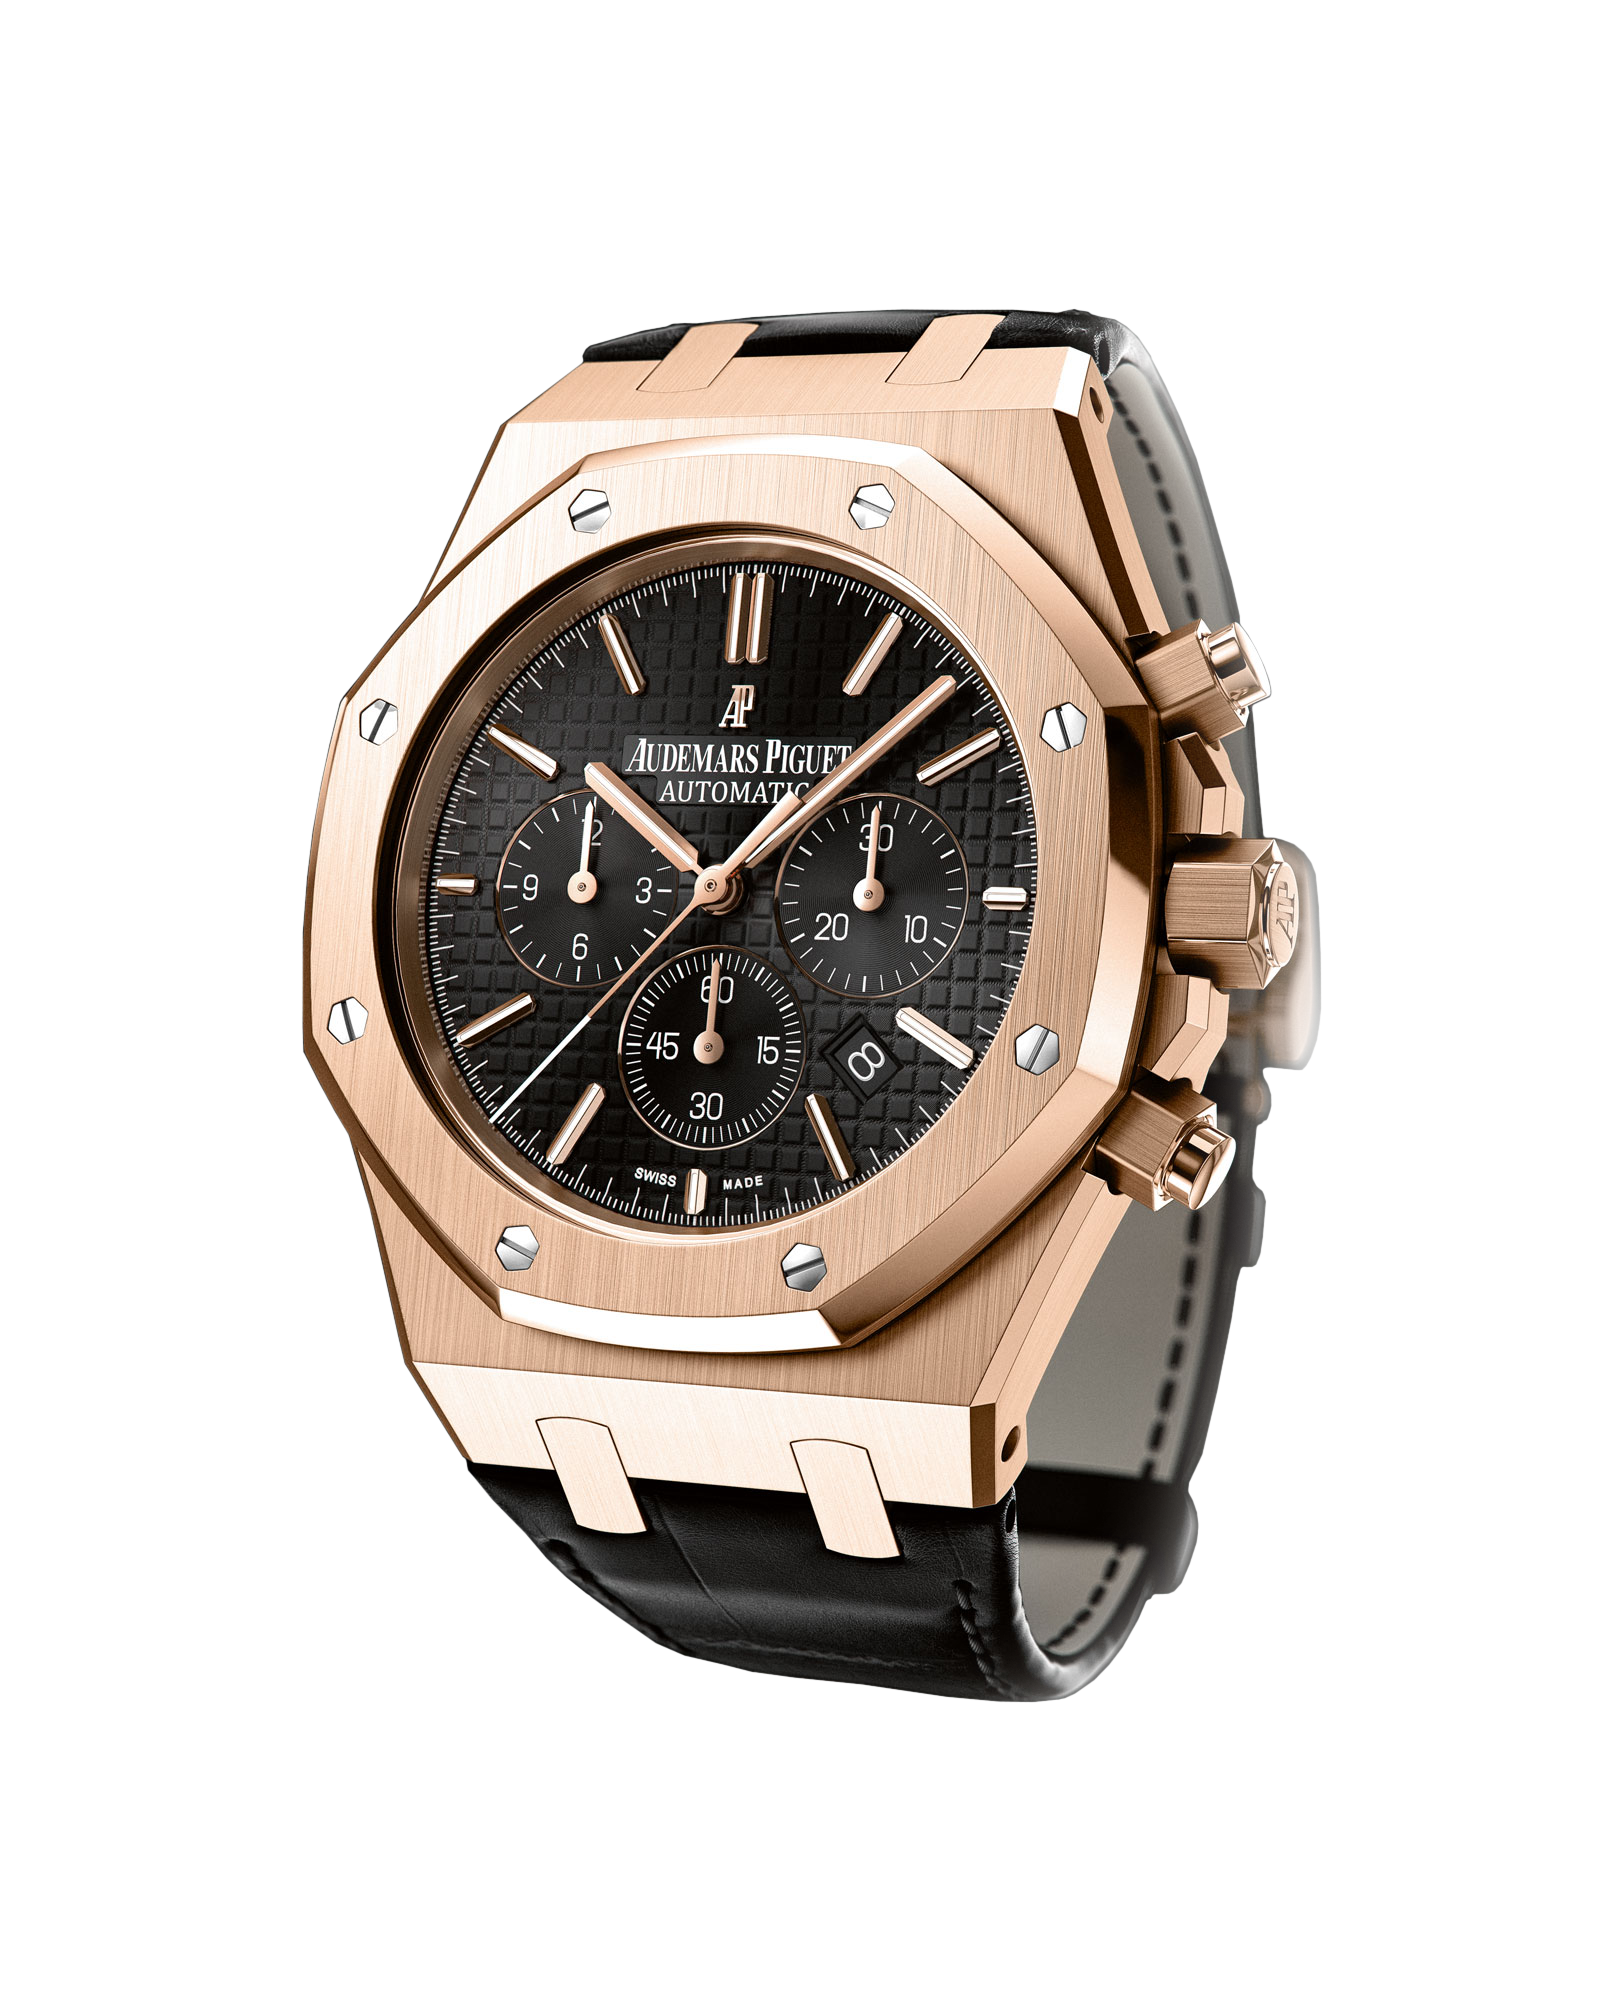 Audemars Piguet Chronograph 26320OR.OO.D002CR.01